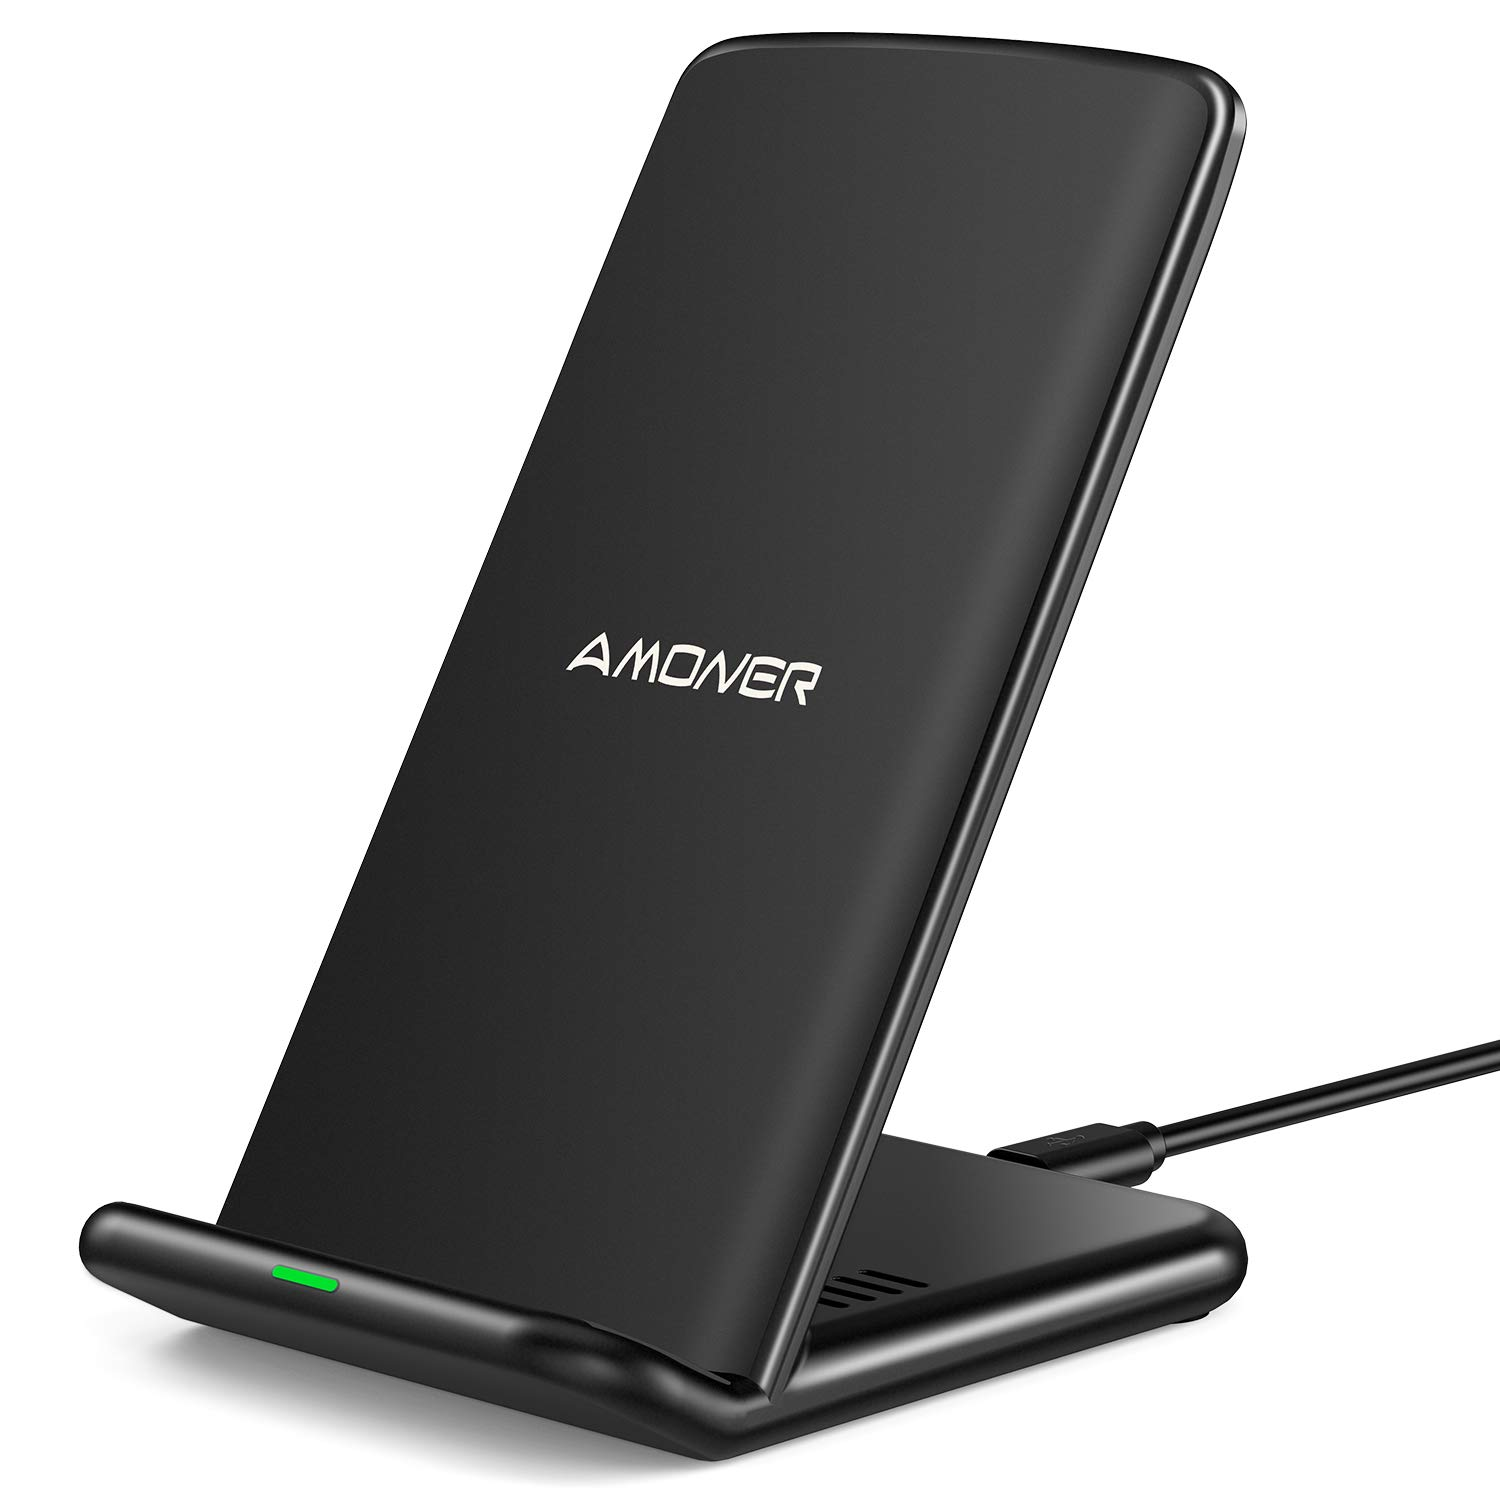 Amoner Wireless Charger, Qi-Certified 15W Fast Wireless Charging Stand Compatible with Galaxy S10/S9/S9+/S8/S8+, iPhone 11/11 Pro/11 Pro Max/Xs Max/Xs/XR/X/8/8Plus(No AC Adpater)